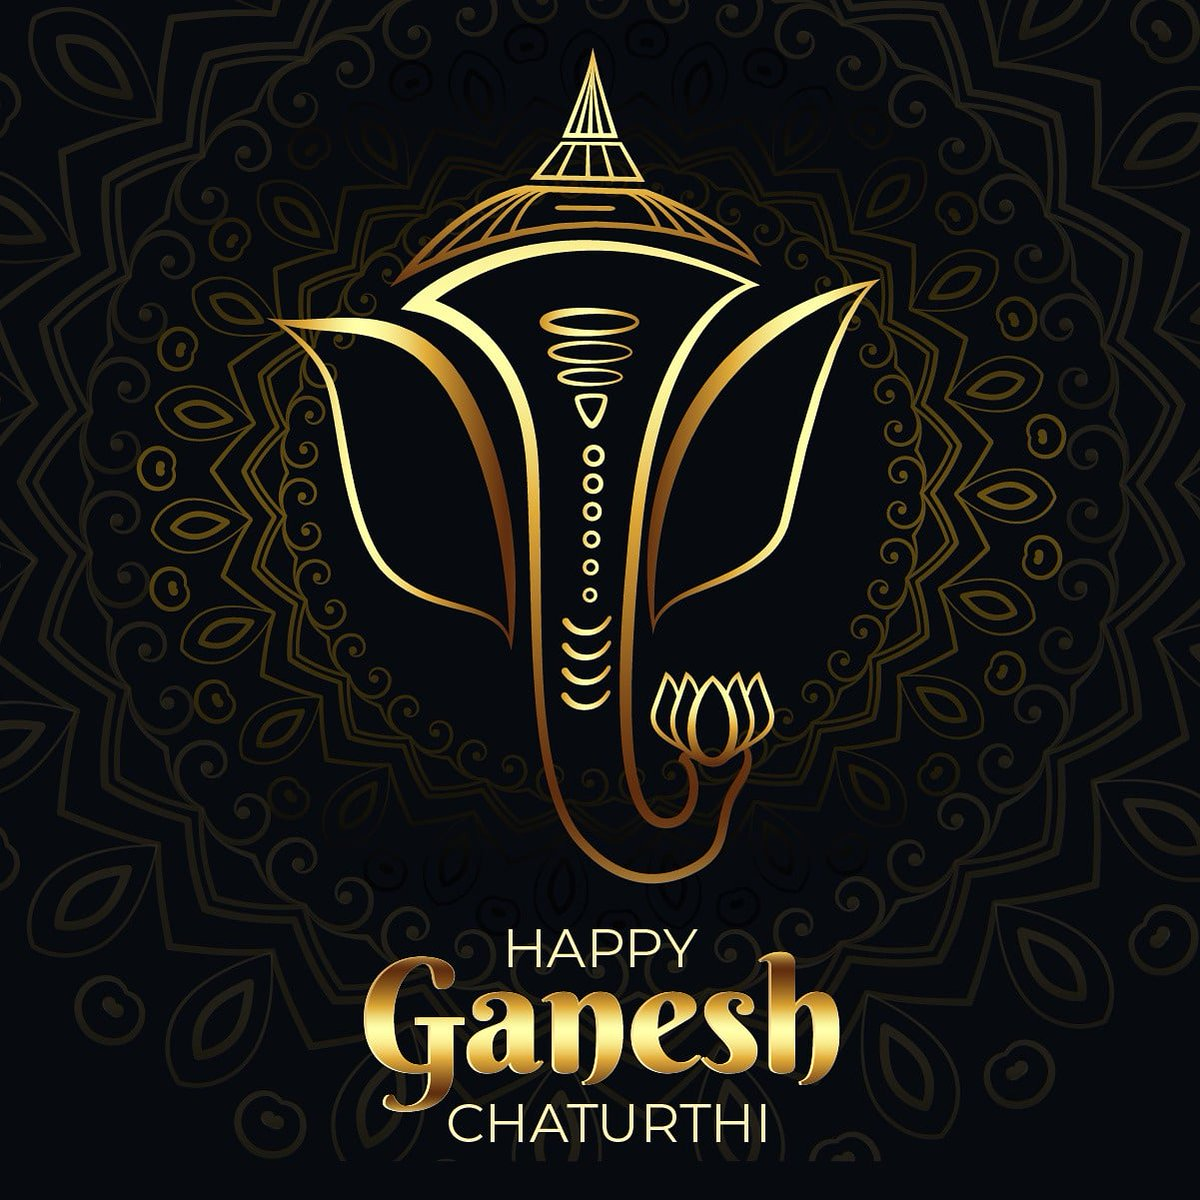 Wishing you all a very happy and prosperous #GaneshChaturthi